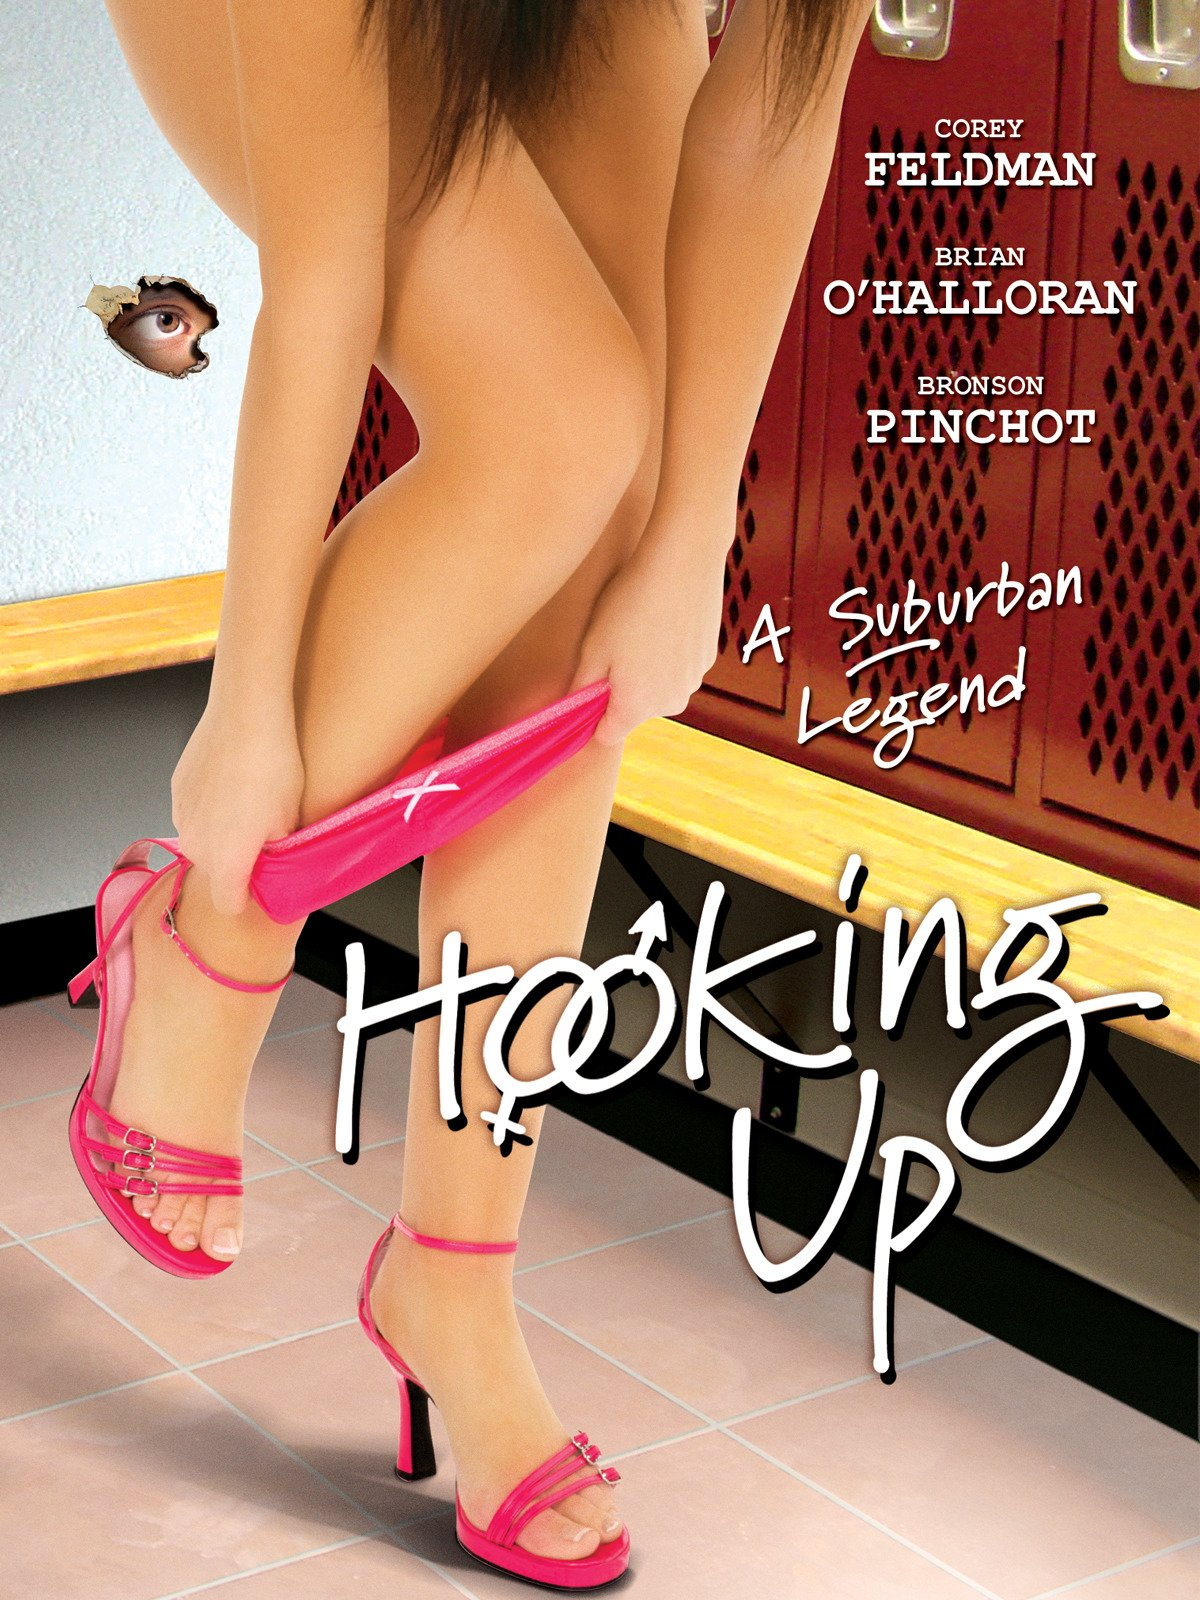 hooking up 2009 full movie download